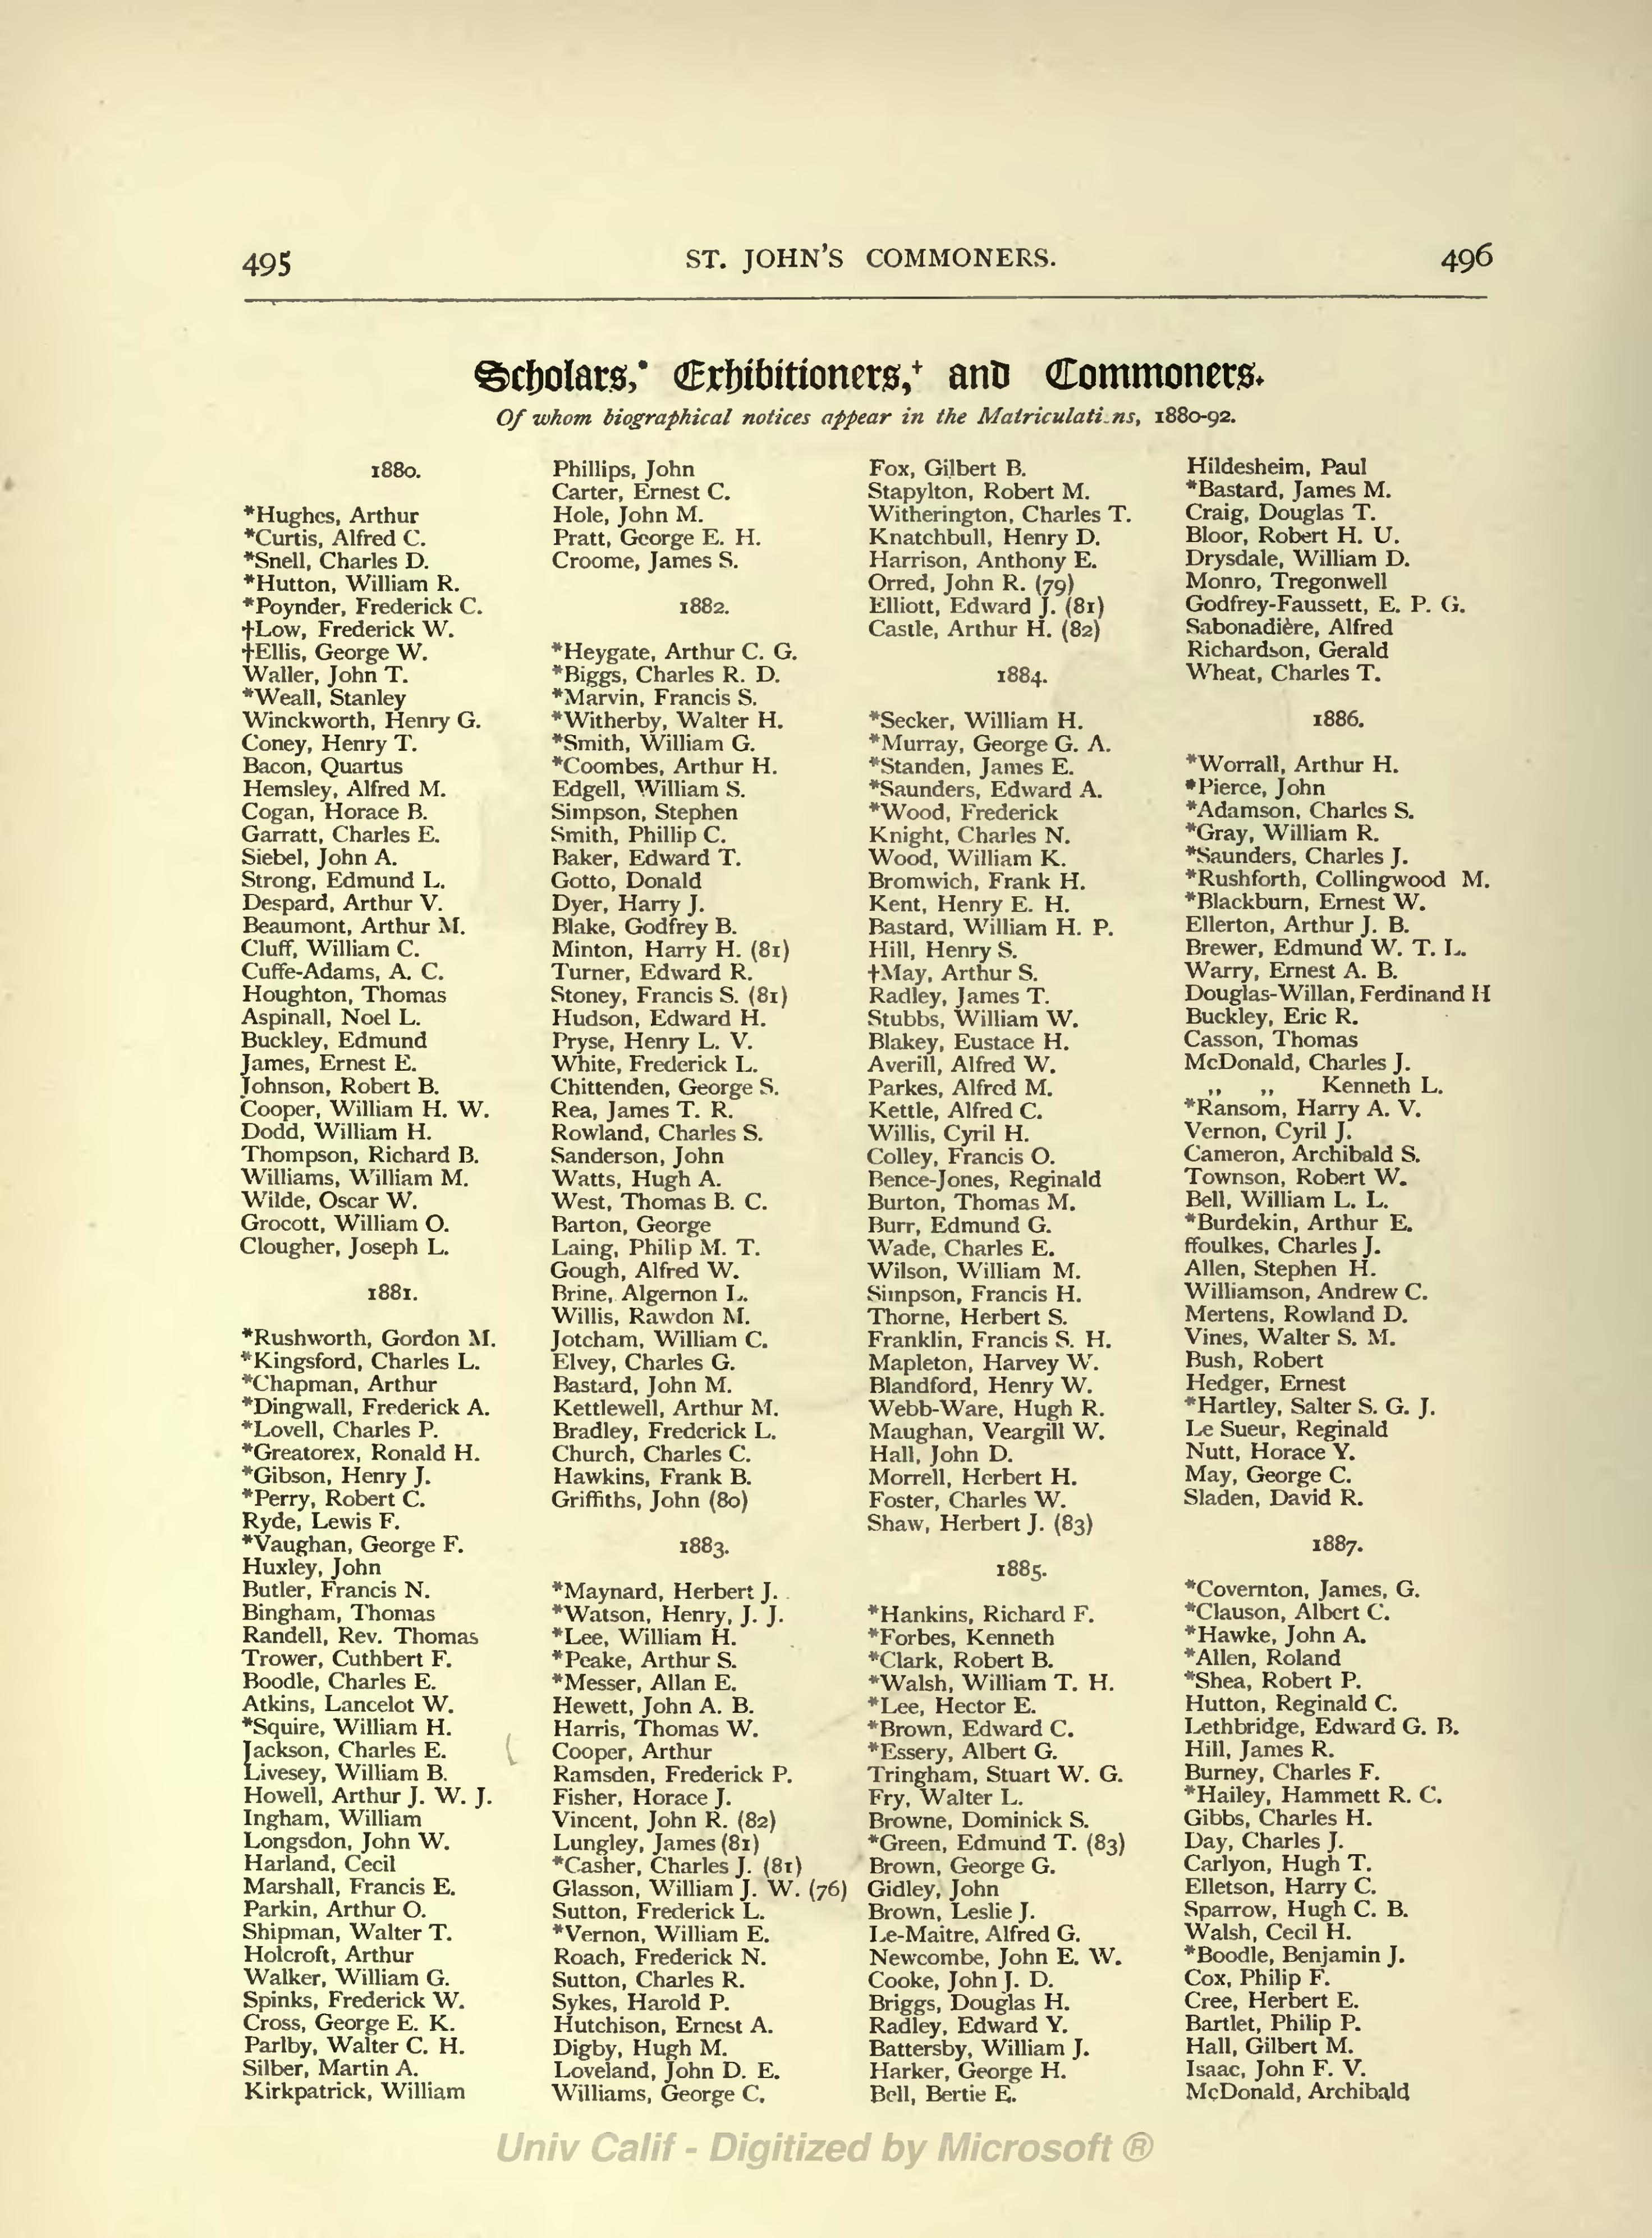 Page Oxford Men And Their Colleges Djvu 398 Wikisource The Free